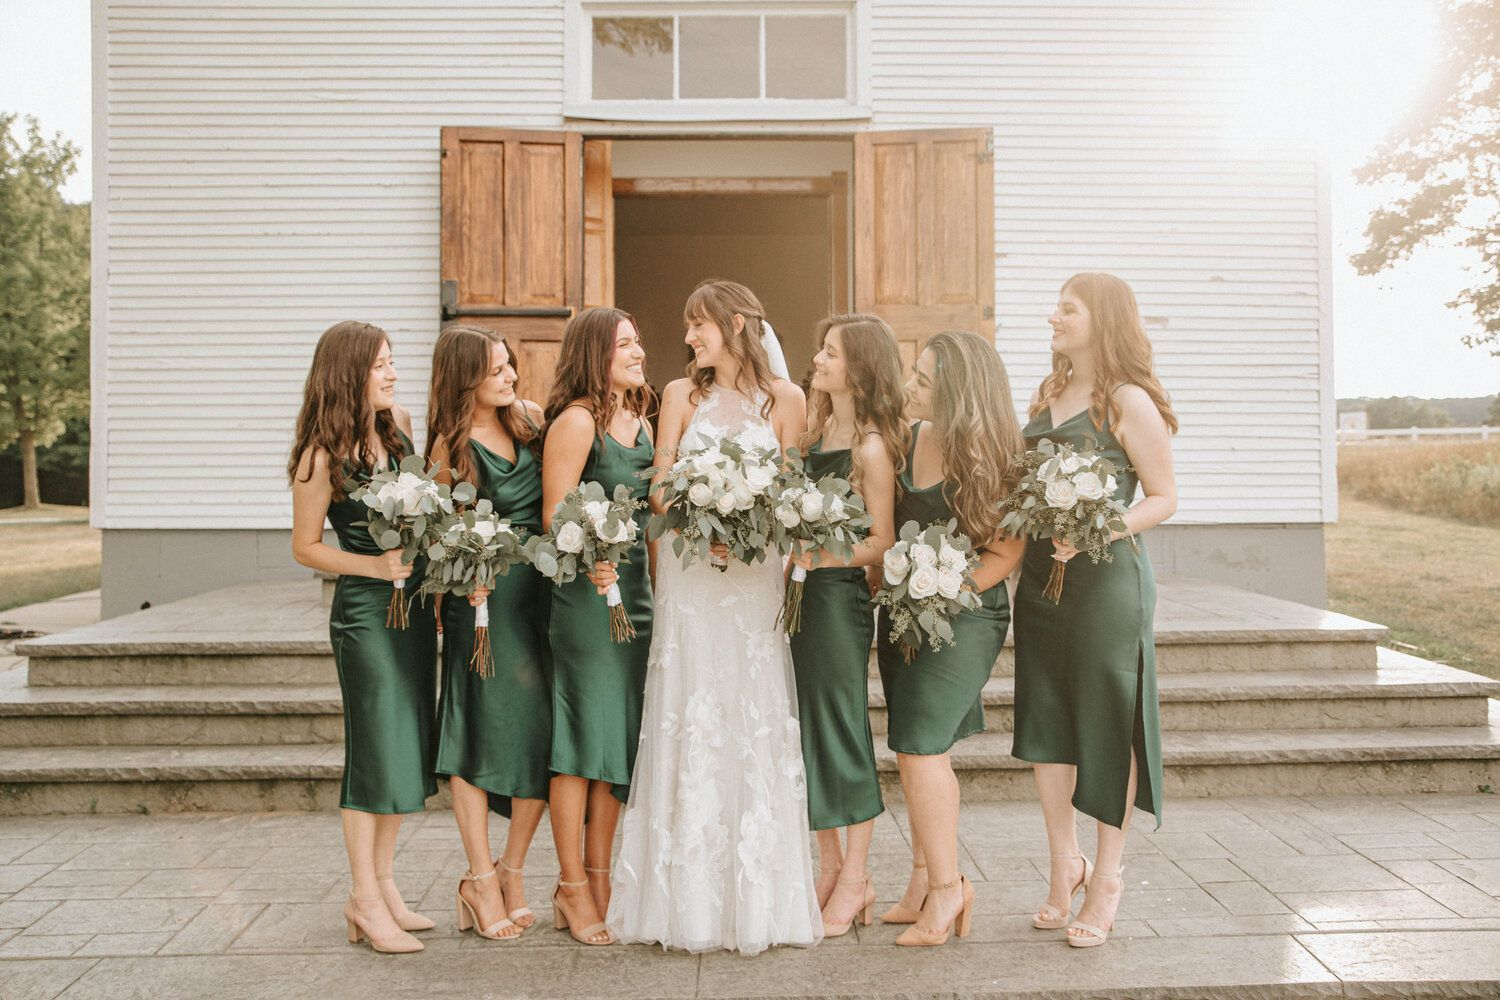 Larissa Catherine Photography In 2020 Wedding Party Photos Wedding Dresses Lace Green And White Wedding Flowers